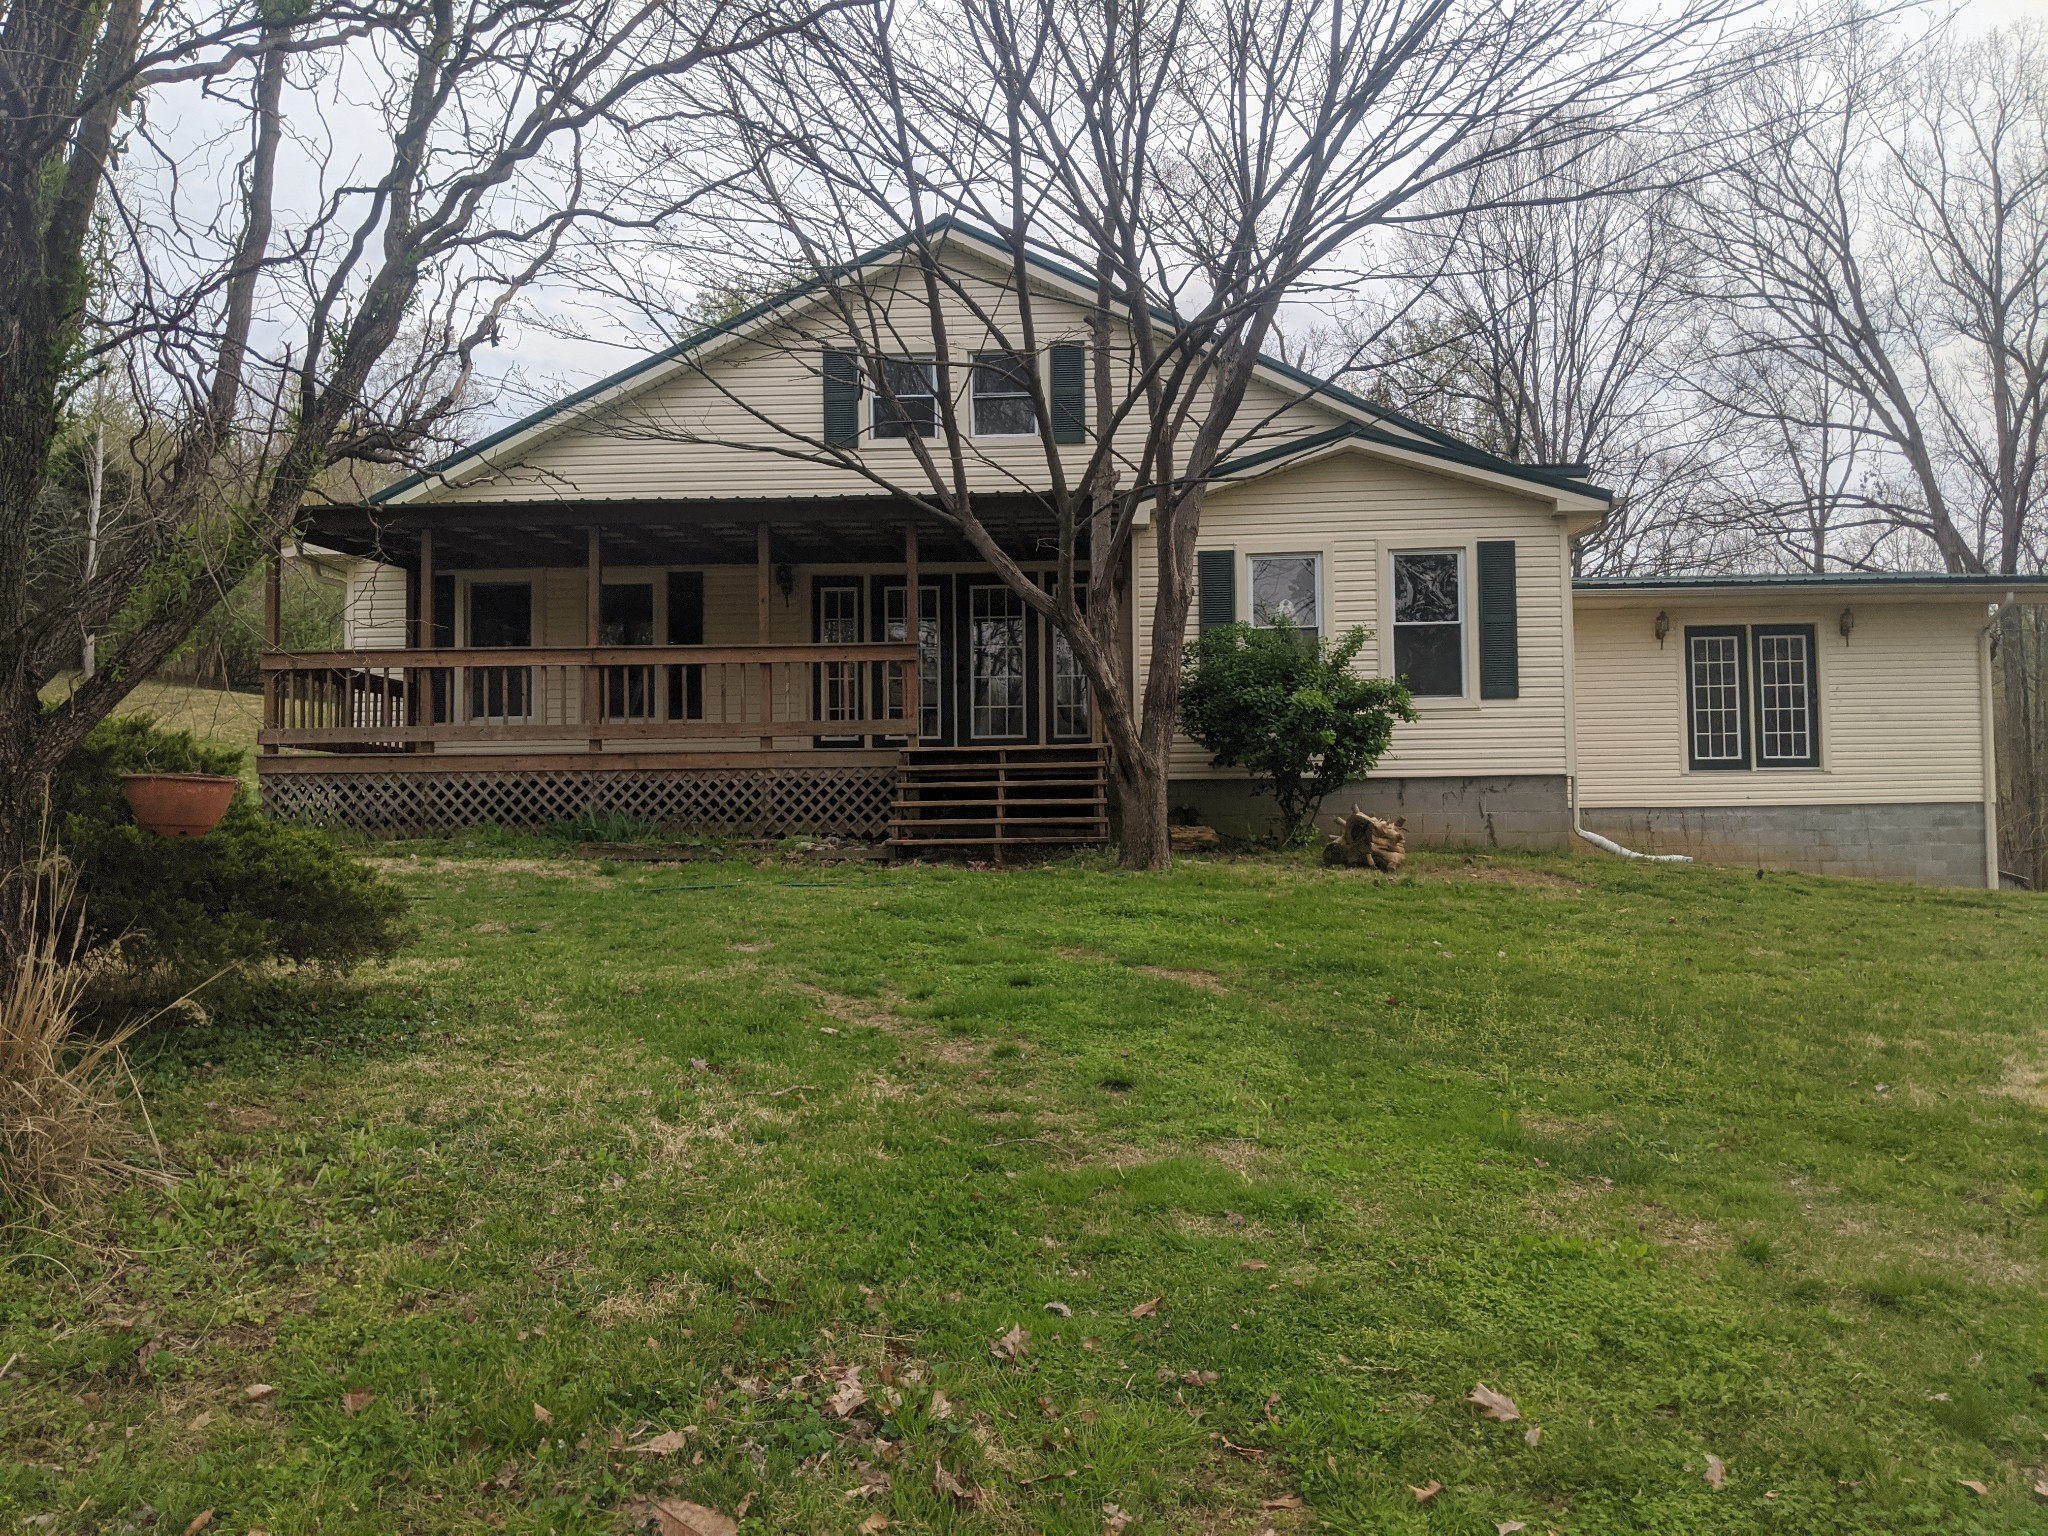 4446 Spring Valley Rd, Erin, TN 37061 - Erin, TN real estate listing